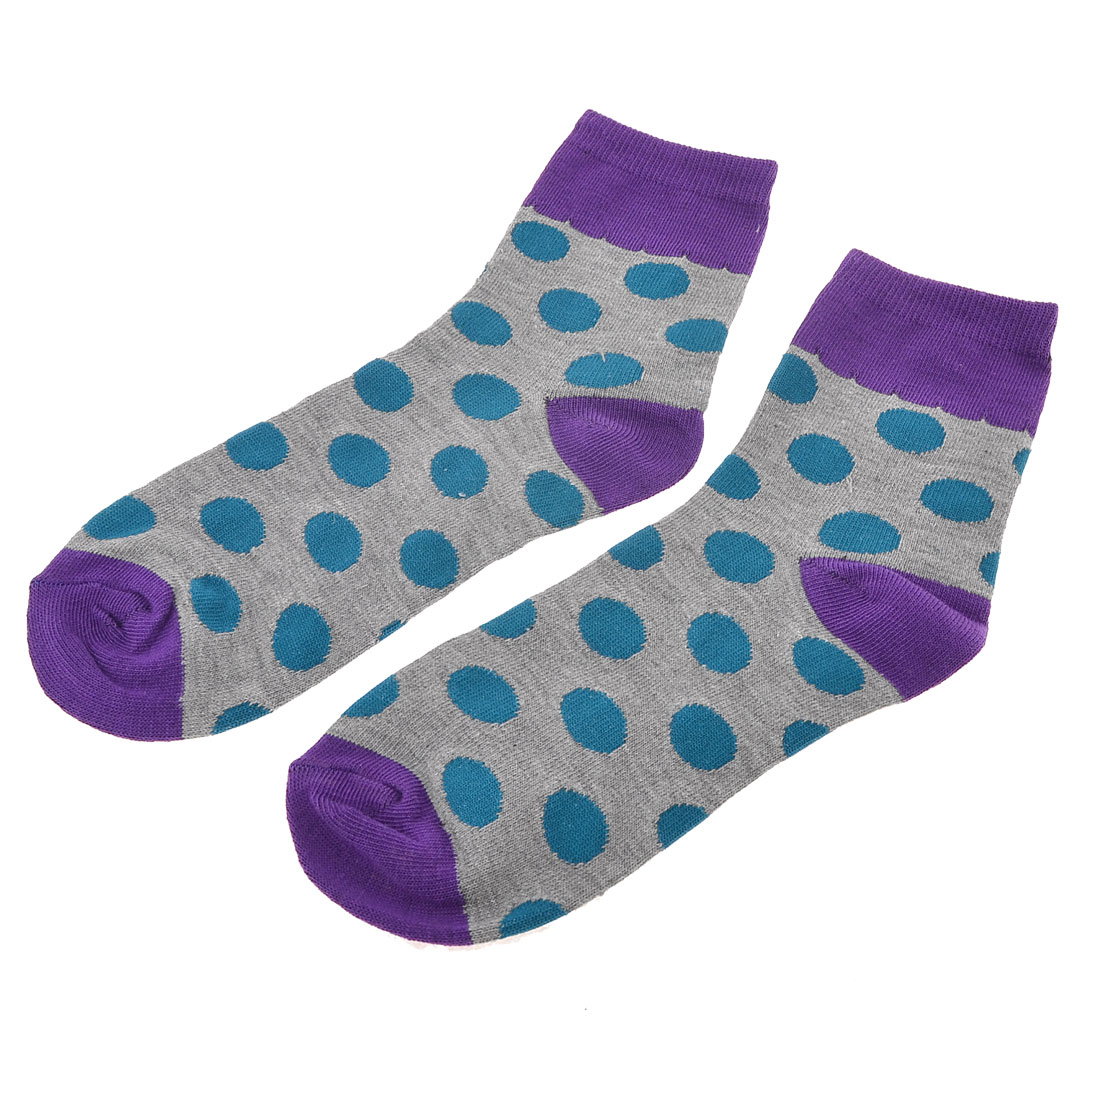 Pair Teal Green Polka Dots Print Gray Stretch Ankle High Hosiery Socks for Woman